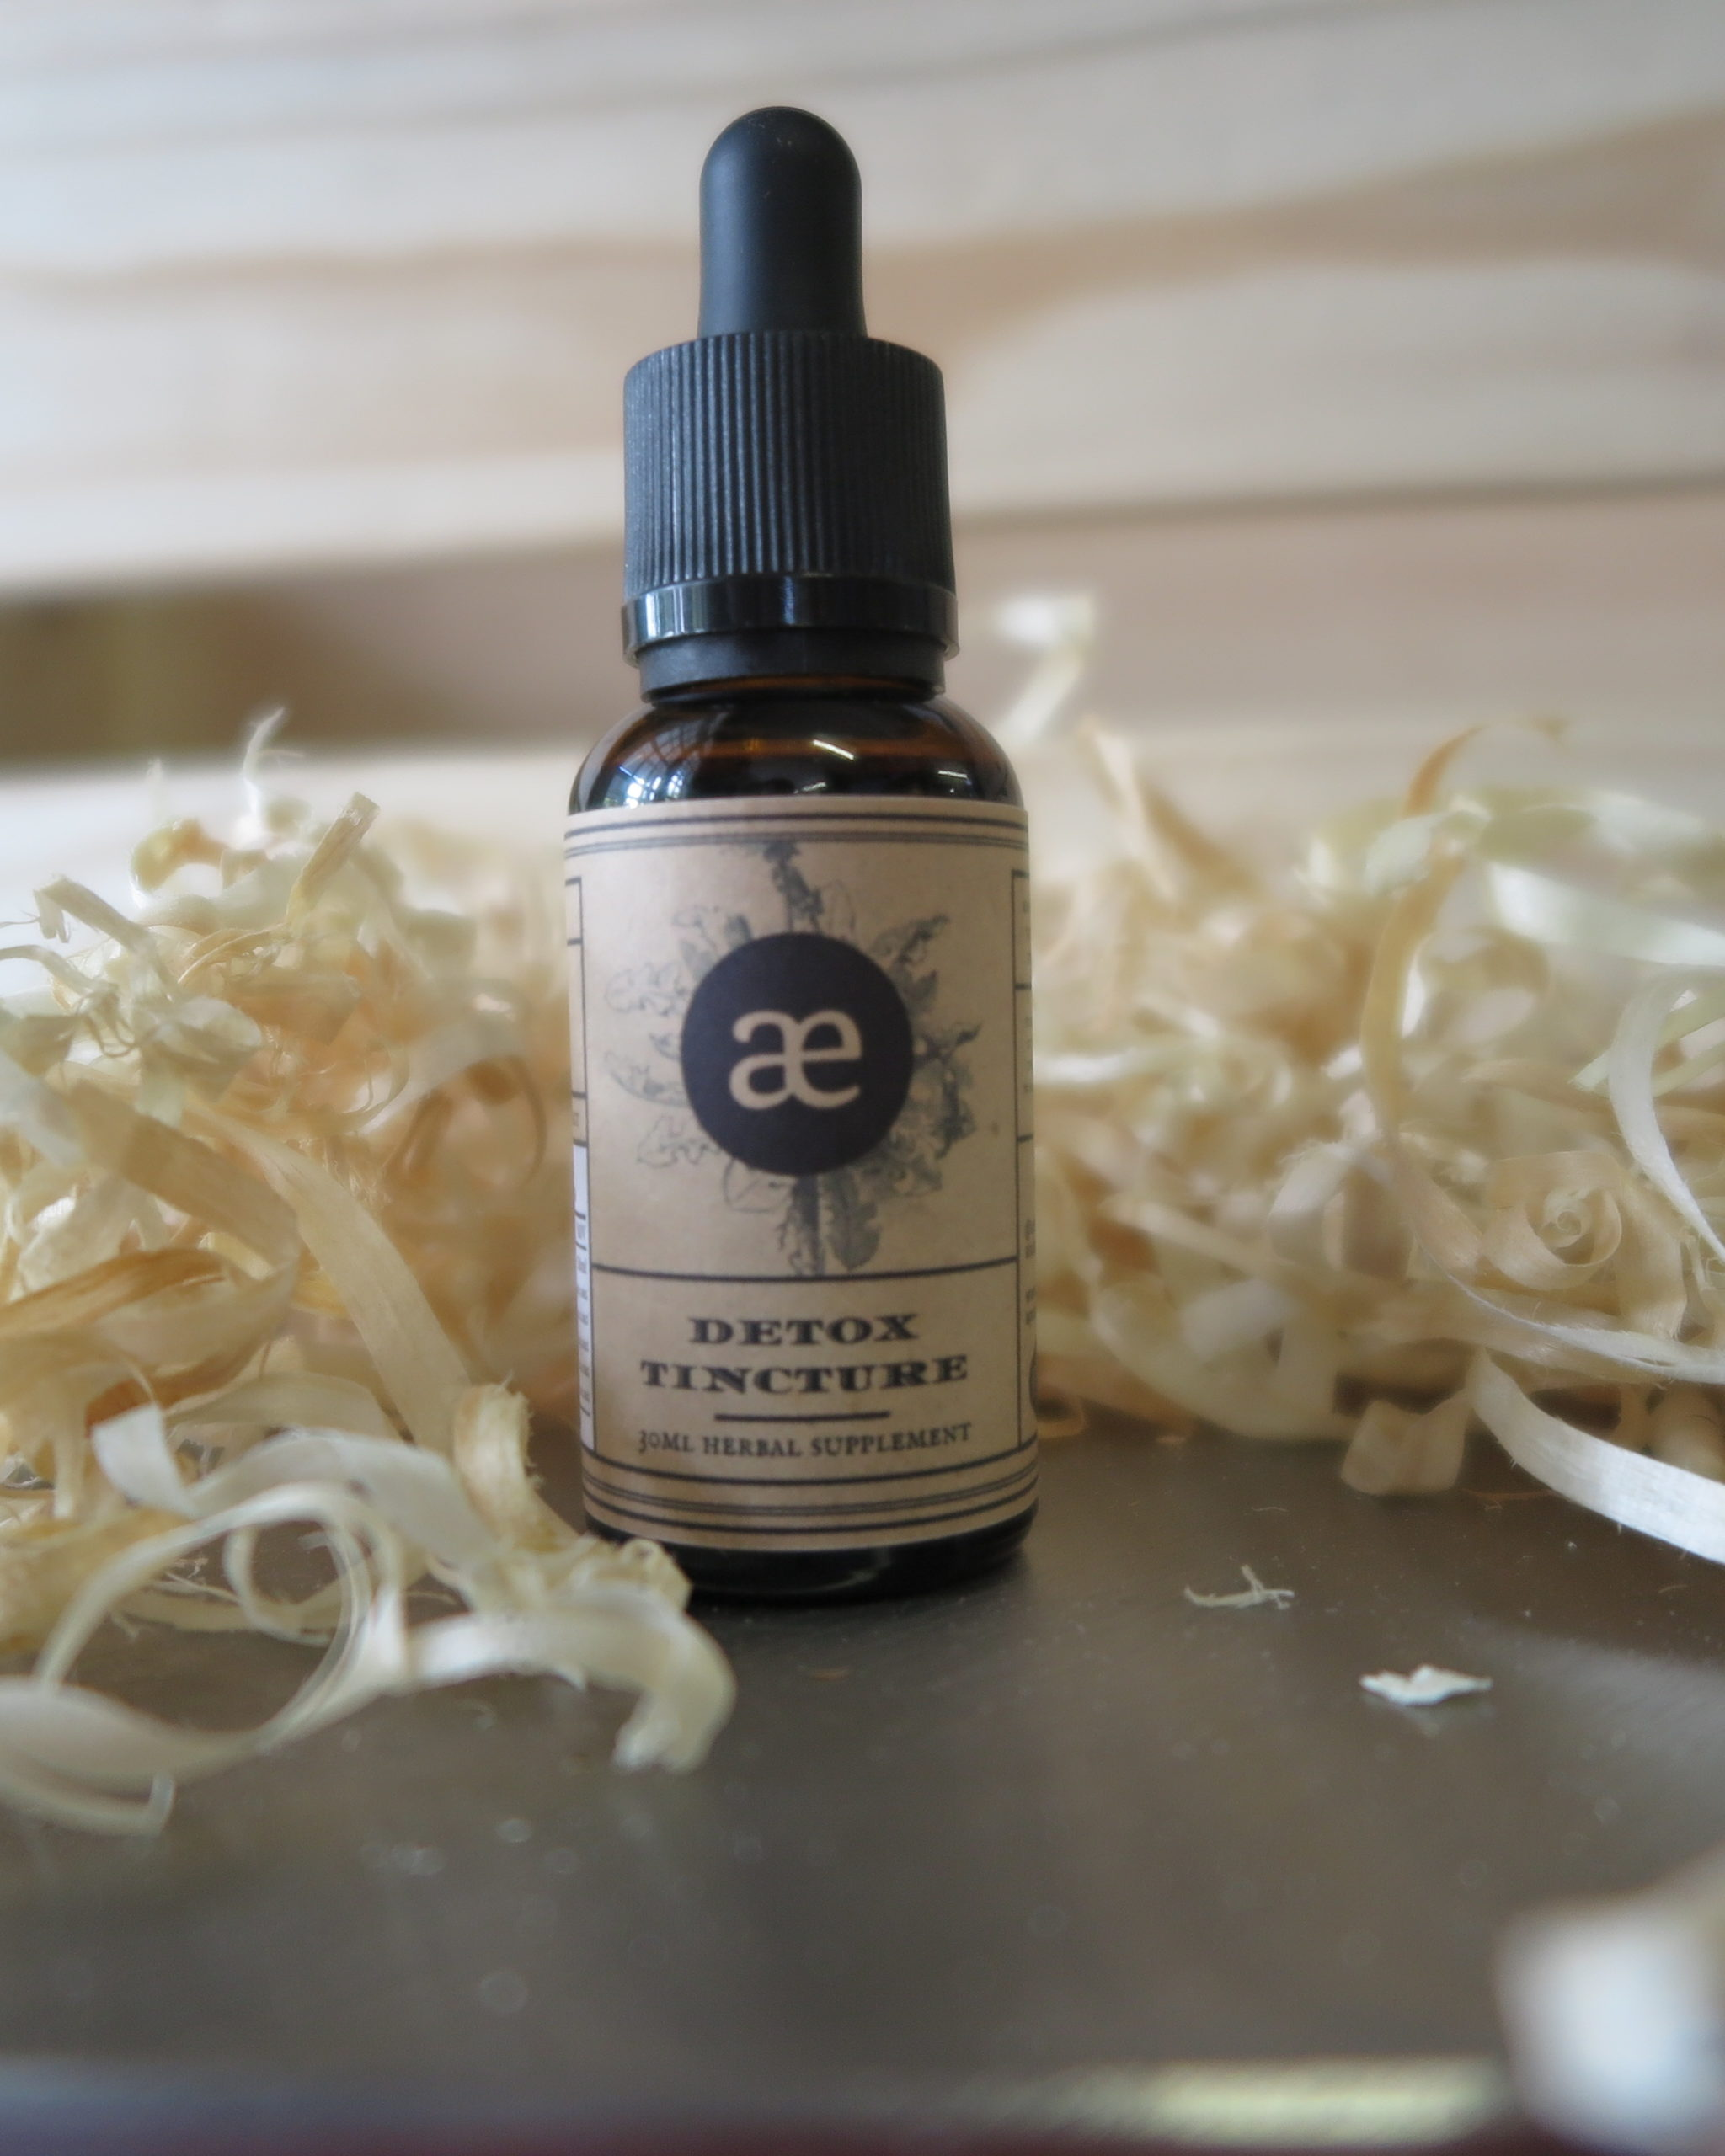 Aether Detox Tincture